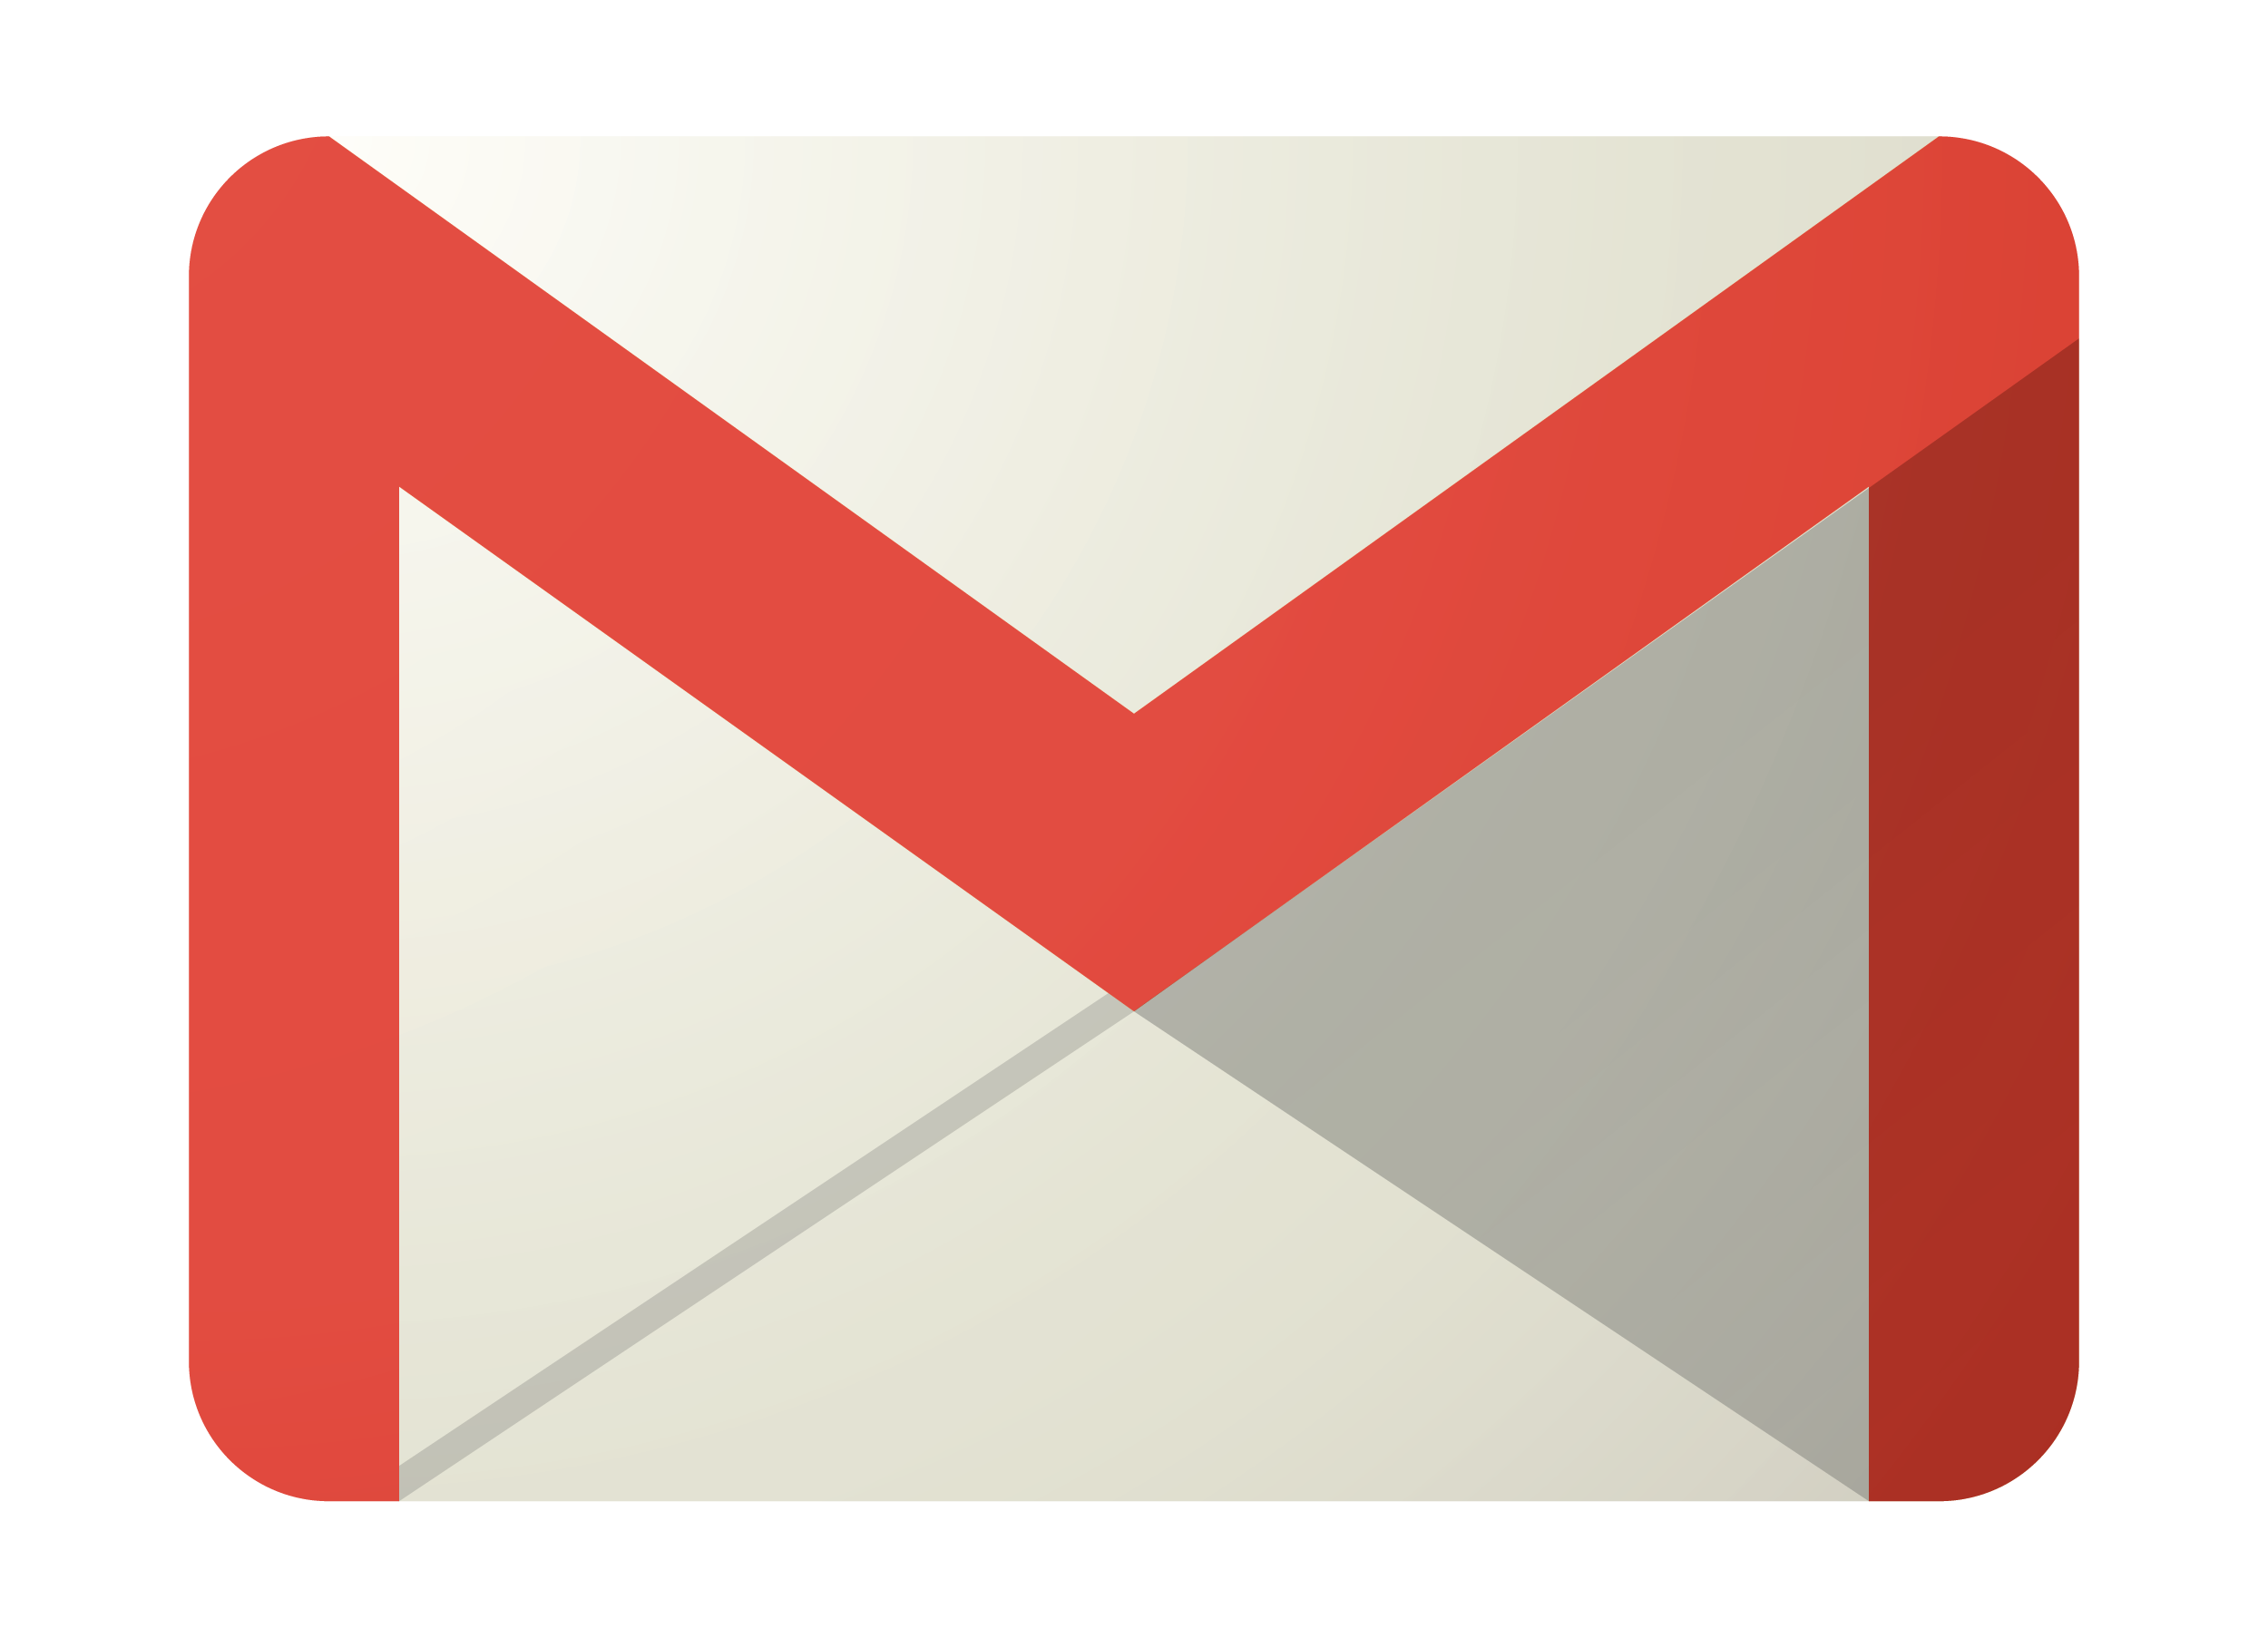 email-logo-png-1114.png